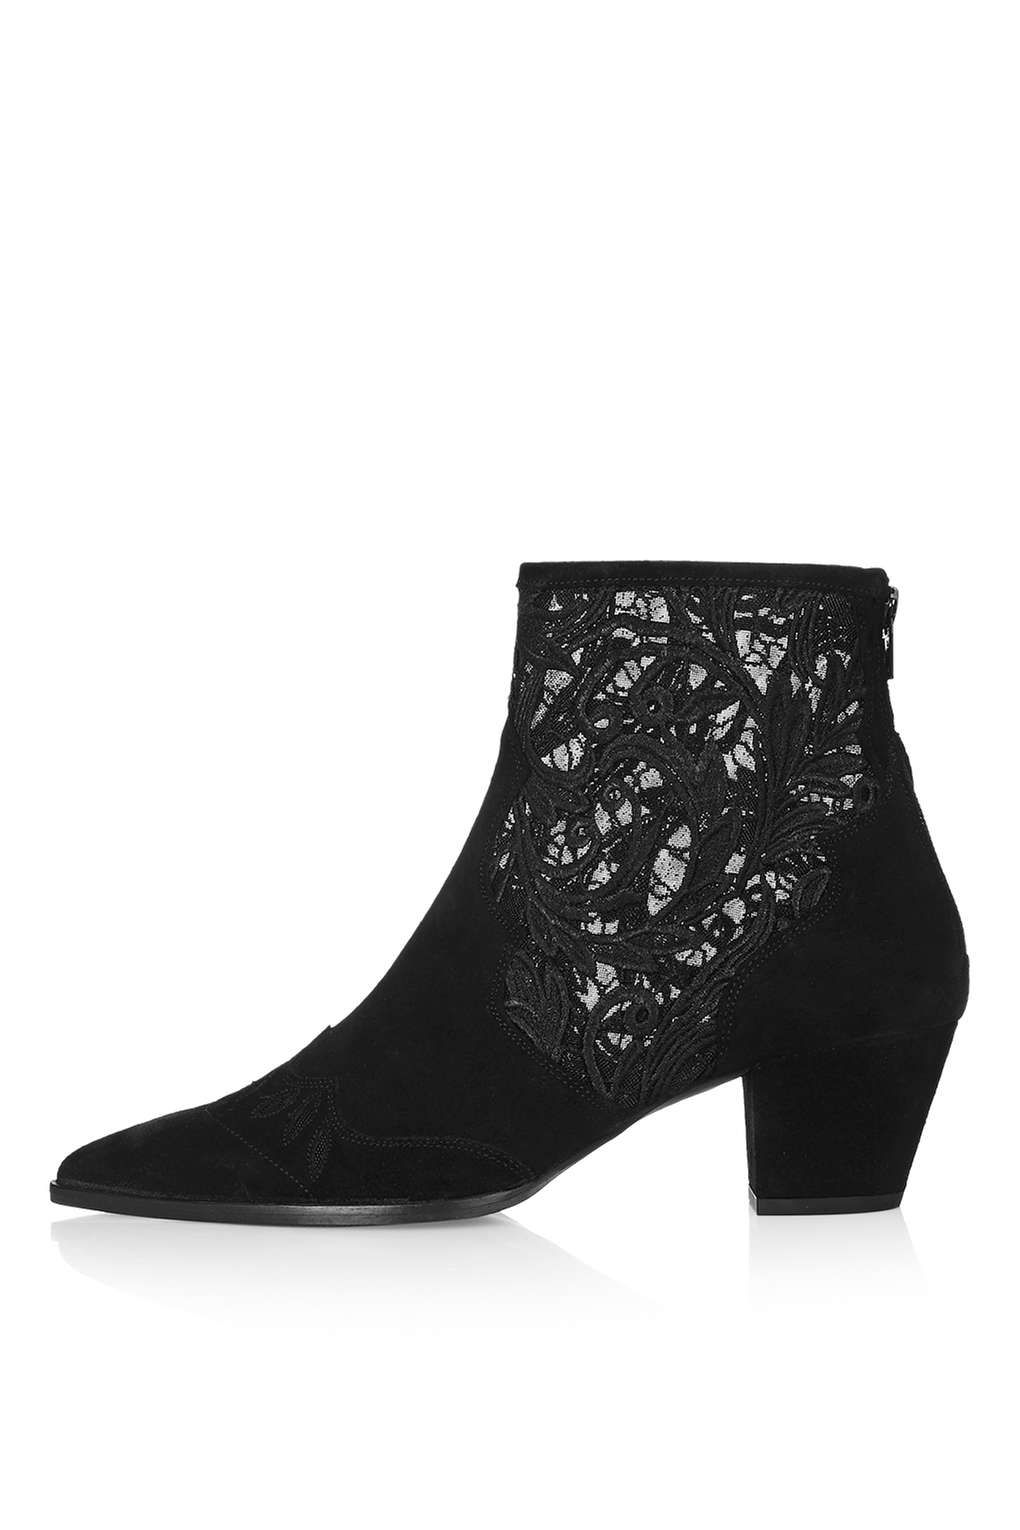 ALEGRA Lace Ankle Boots | Everything, Europe and With everything